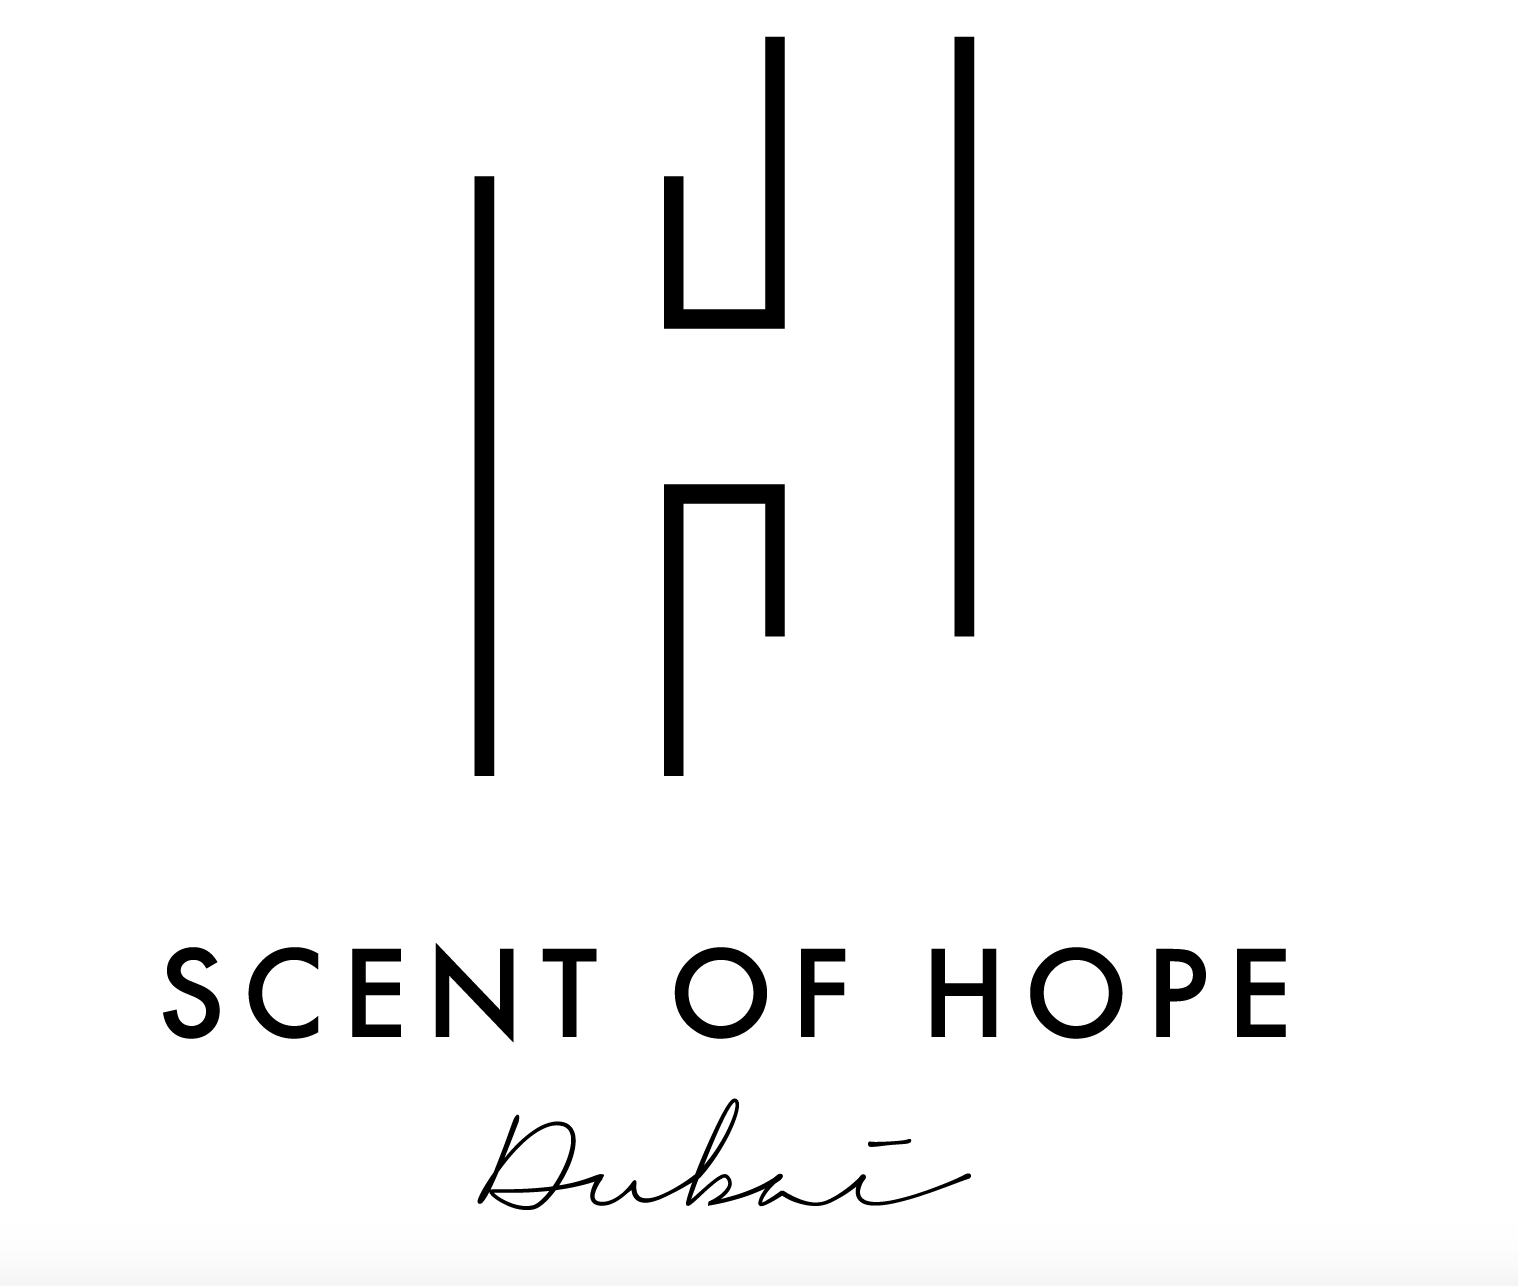 SCENT OF HOPE